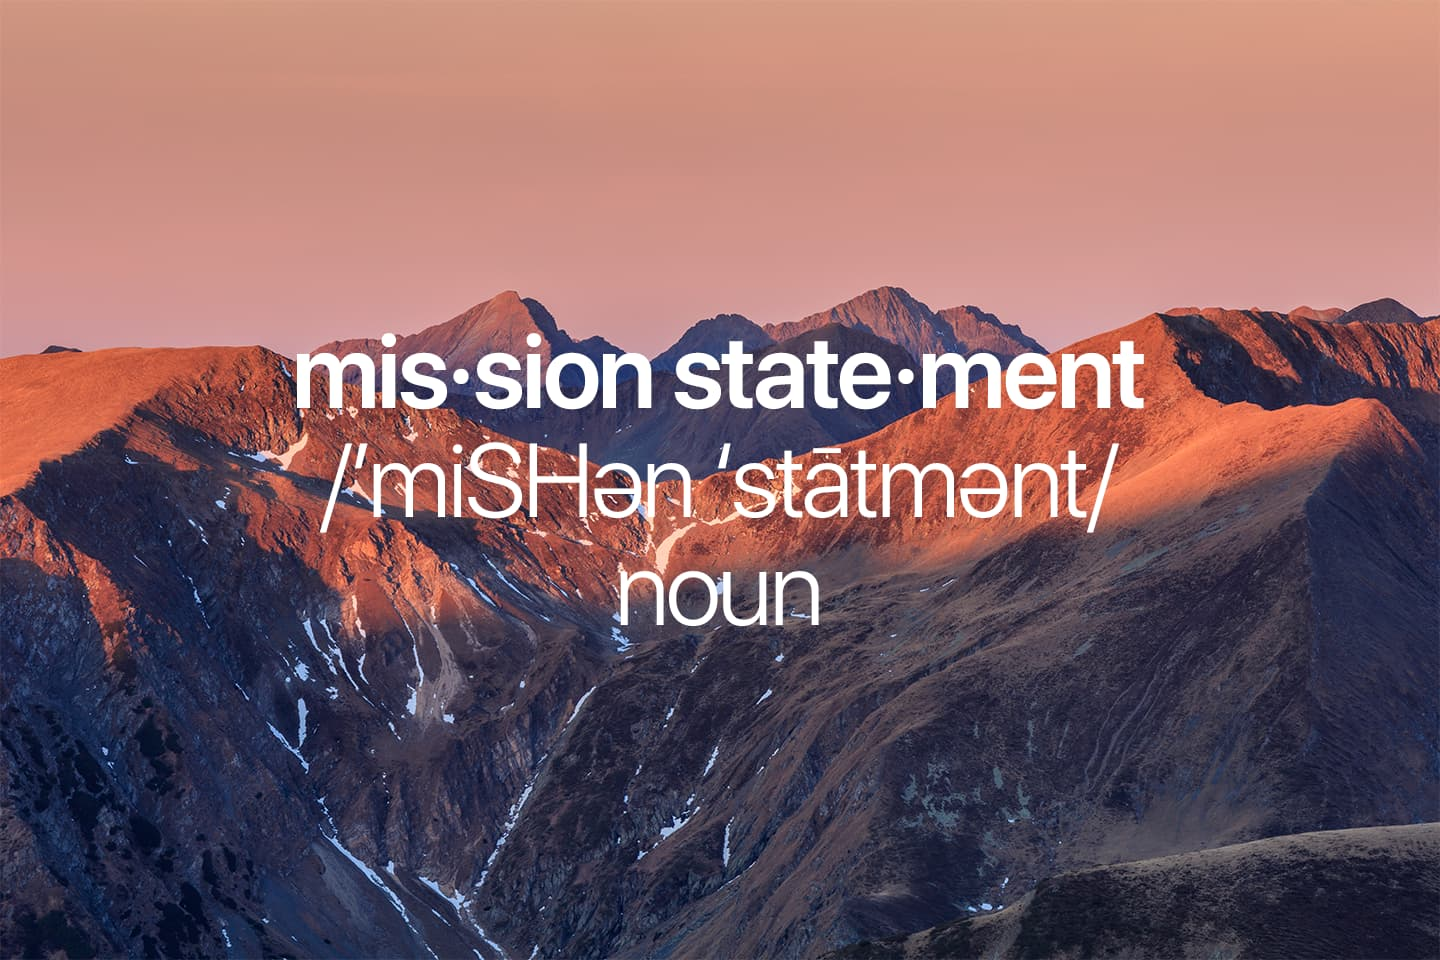 Mission Statements for Individuals. Luxury or Necessity?